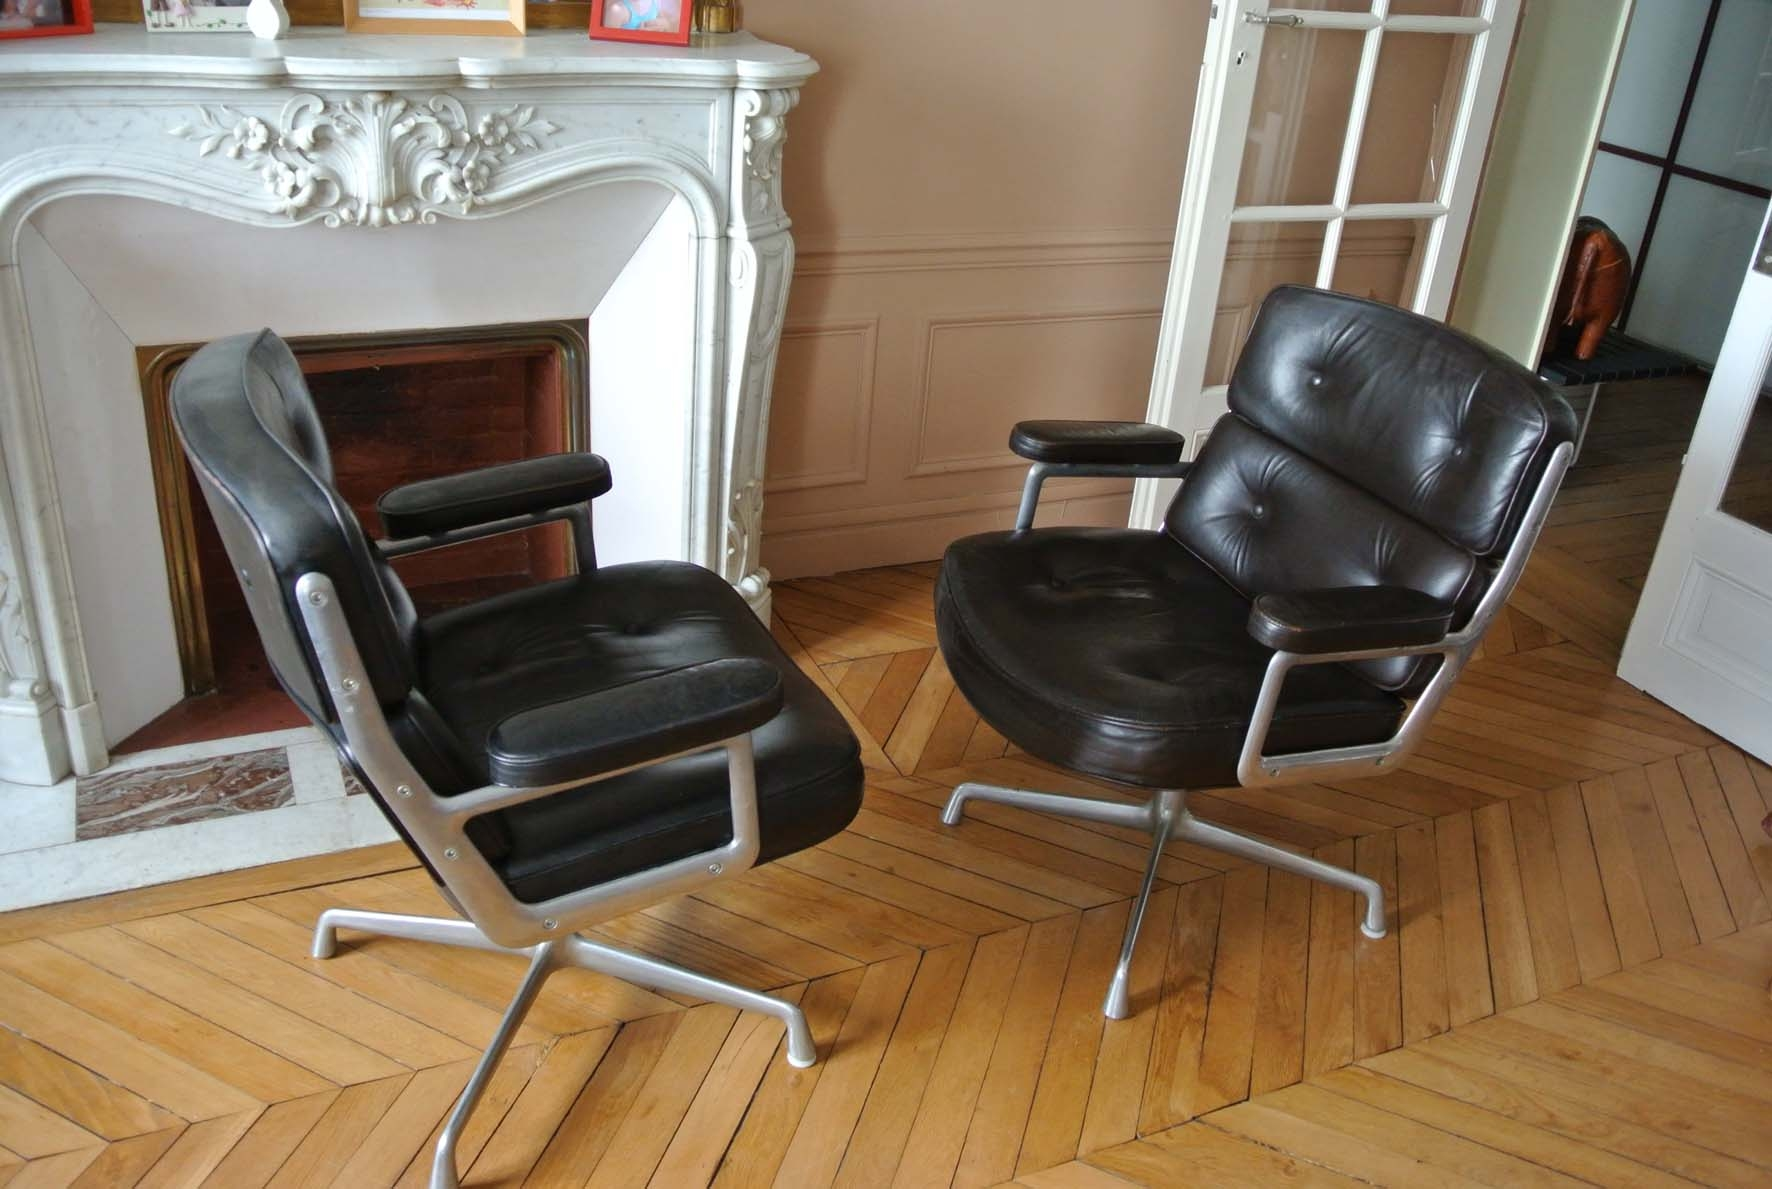 Fauteuils eames lobby chair herman miller l 39 atelier 50 for Mobilier international eames